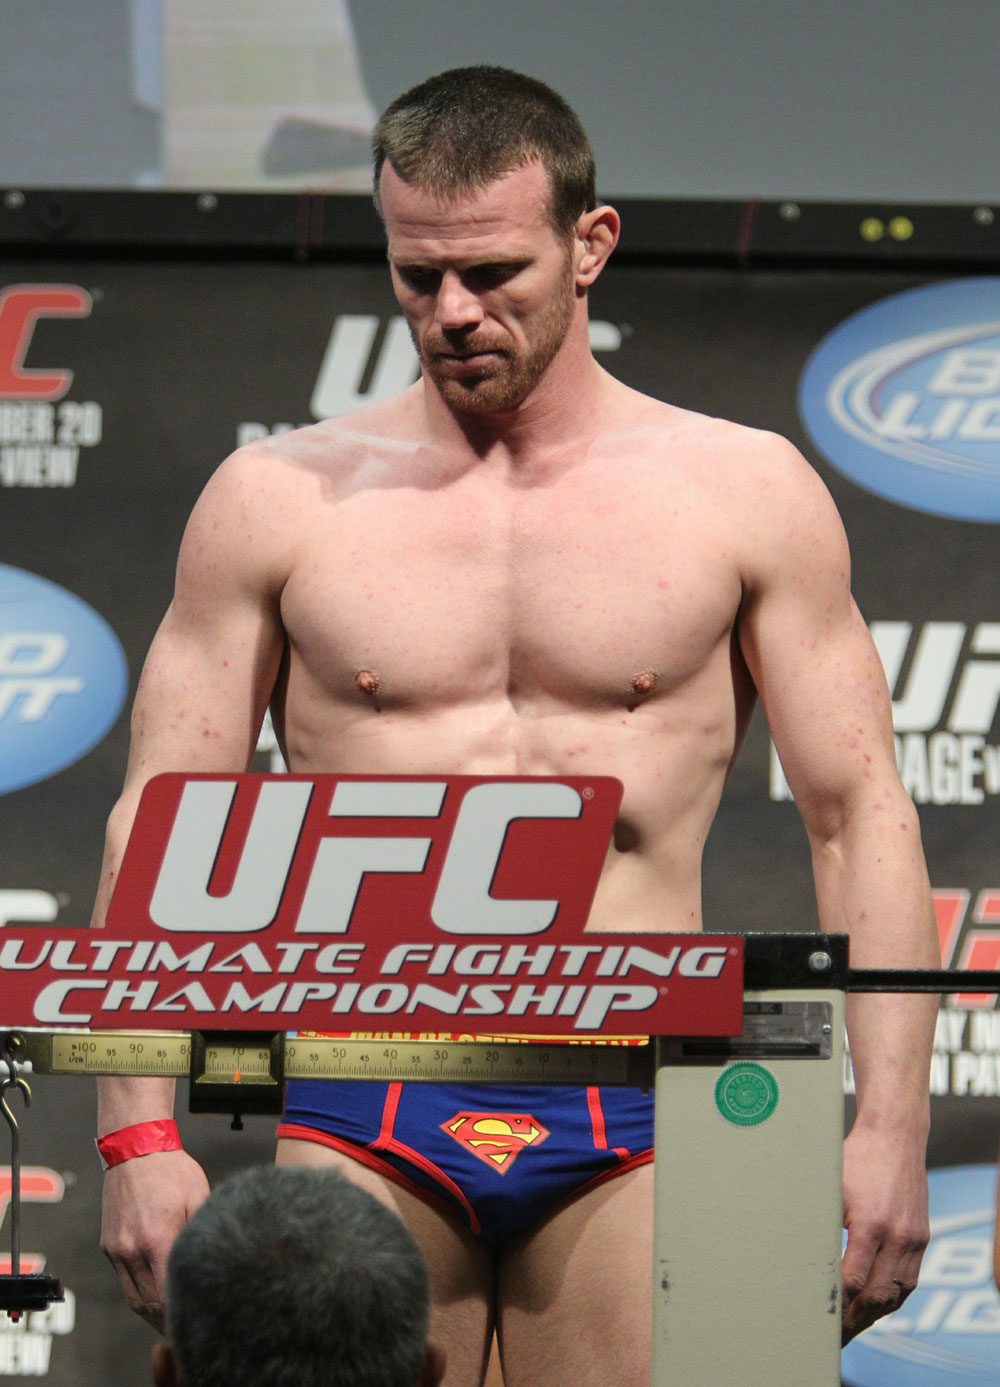 Dennis Hallman weighs in at 170 lbs at the UFC 123 weigh-in at the Palace of Auburn Hills on November 19, 2010 in Auburn Hills, Michigan.  (Photo by Josh Hedges/Zuffa LLC/Zuffa LLC via Getty Images)